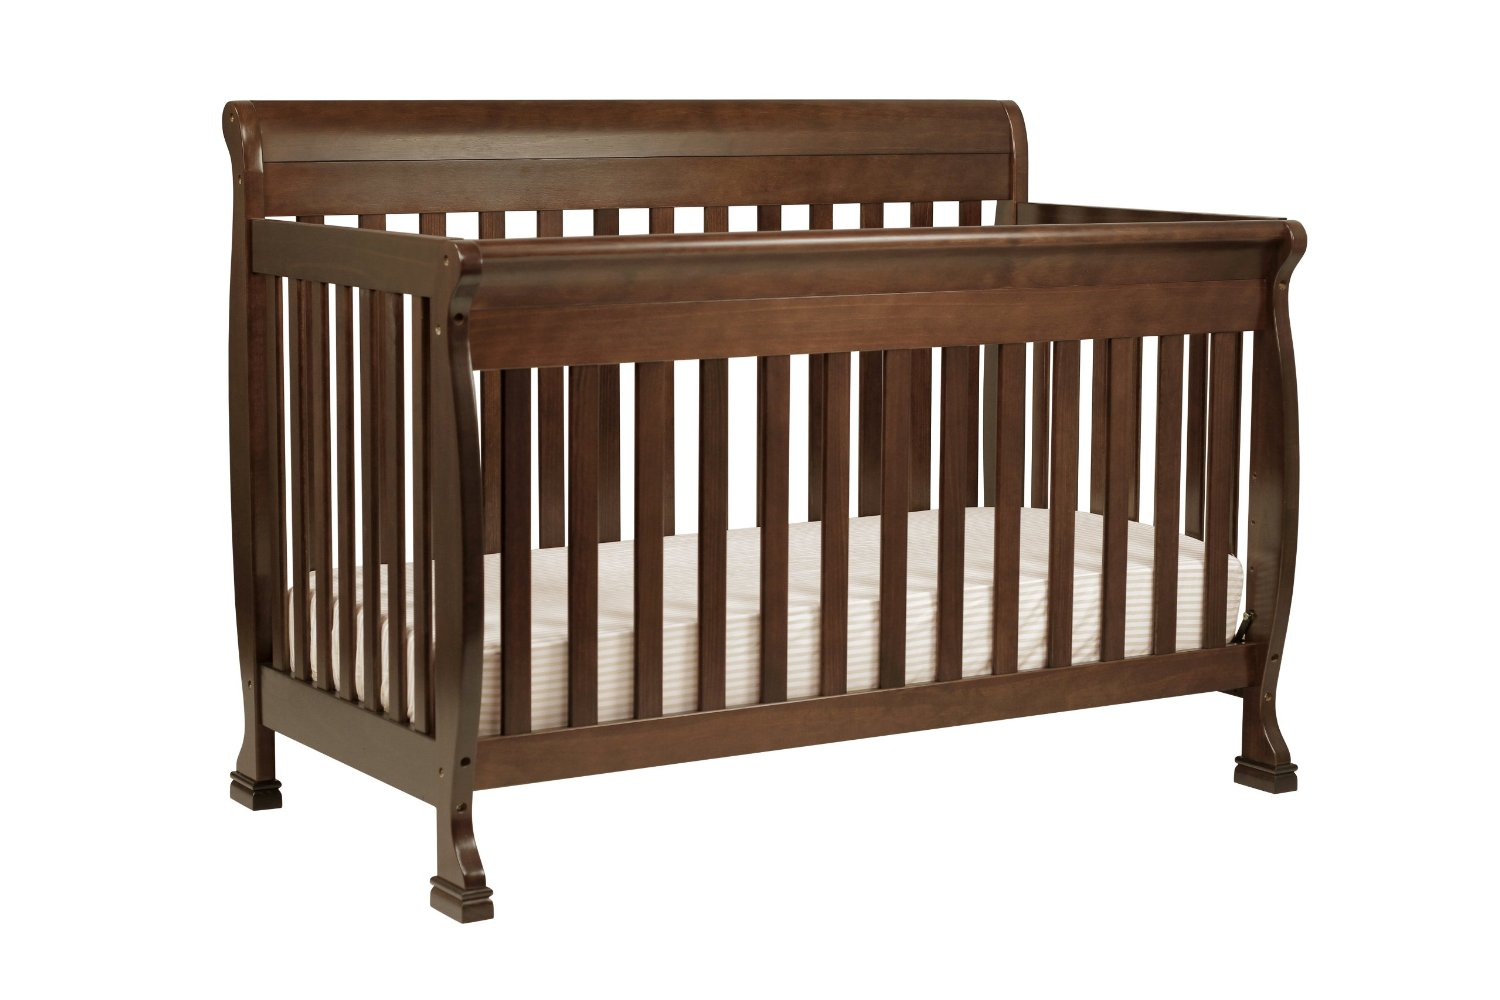 of me furniture warehouse conjunction cribs reading in also together under size nursery affordable stores sets nh depot bedding plus crib near walmart with clearance by owner baby piece set full for sale beddings